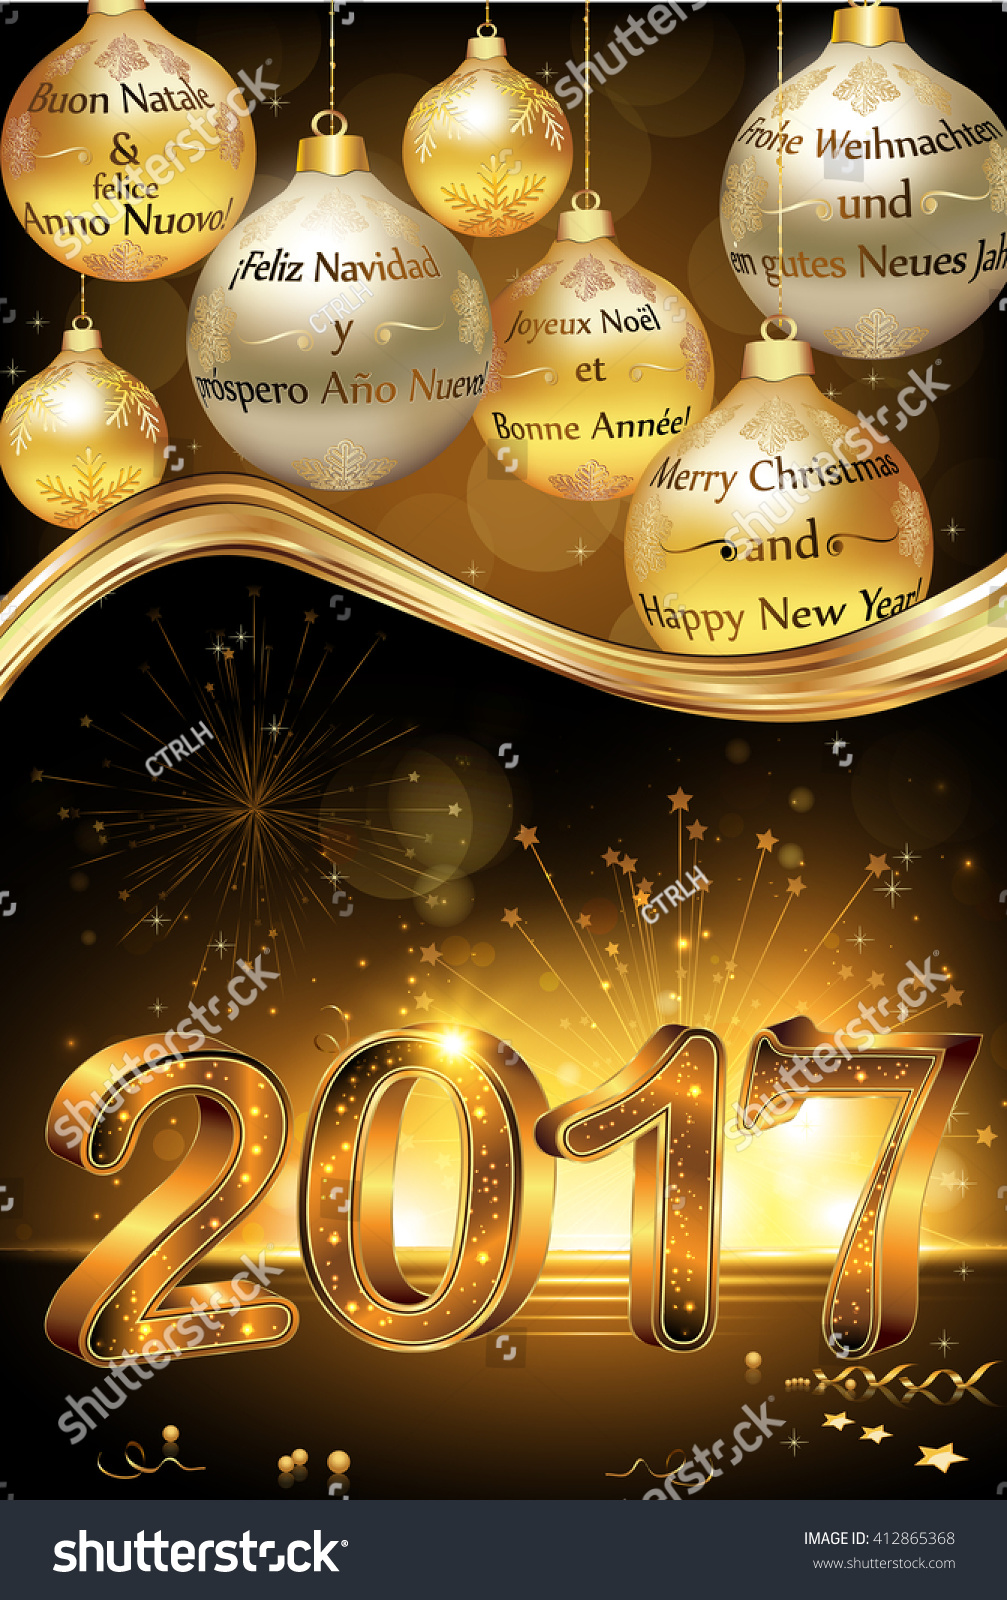 Happy new year 2017 greeting card stock vector royalty free happy new year 2017 greeting card card with message in many languages english m4hsunfo